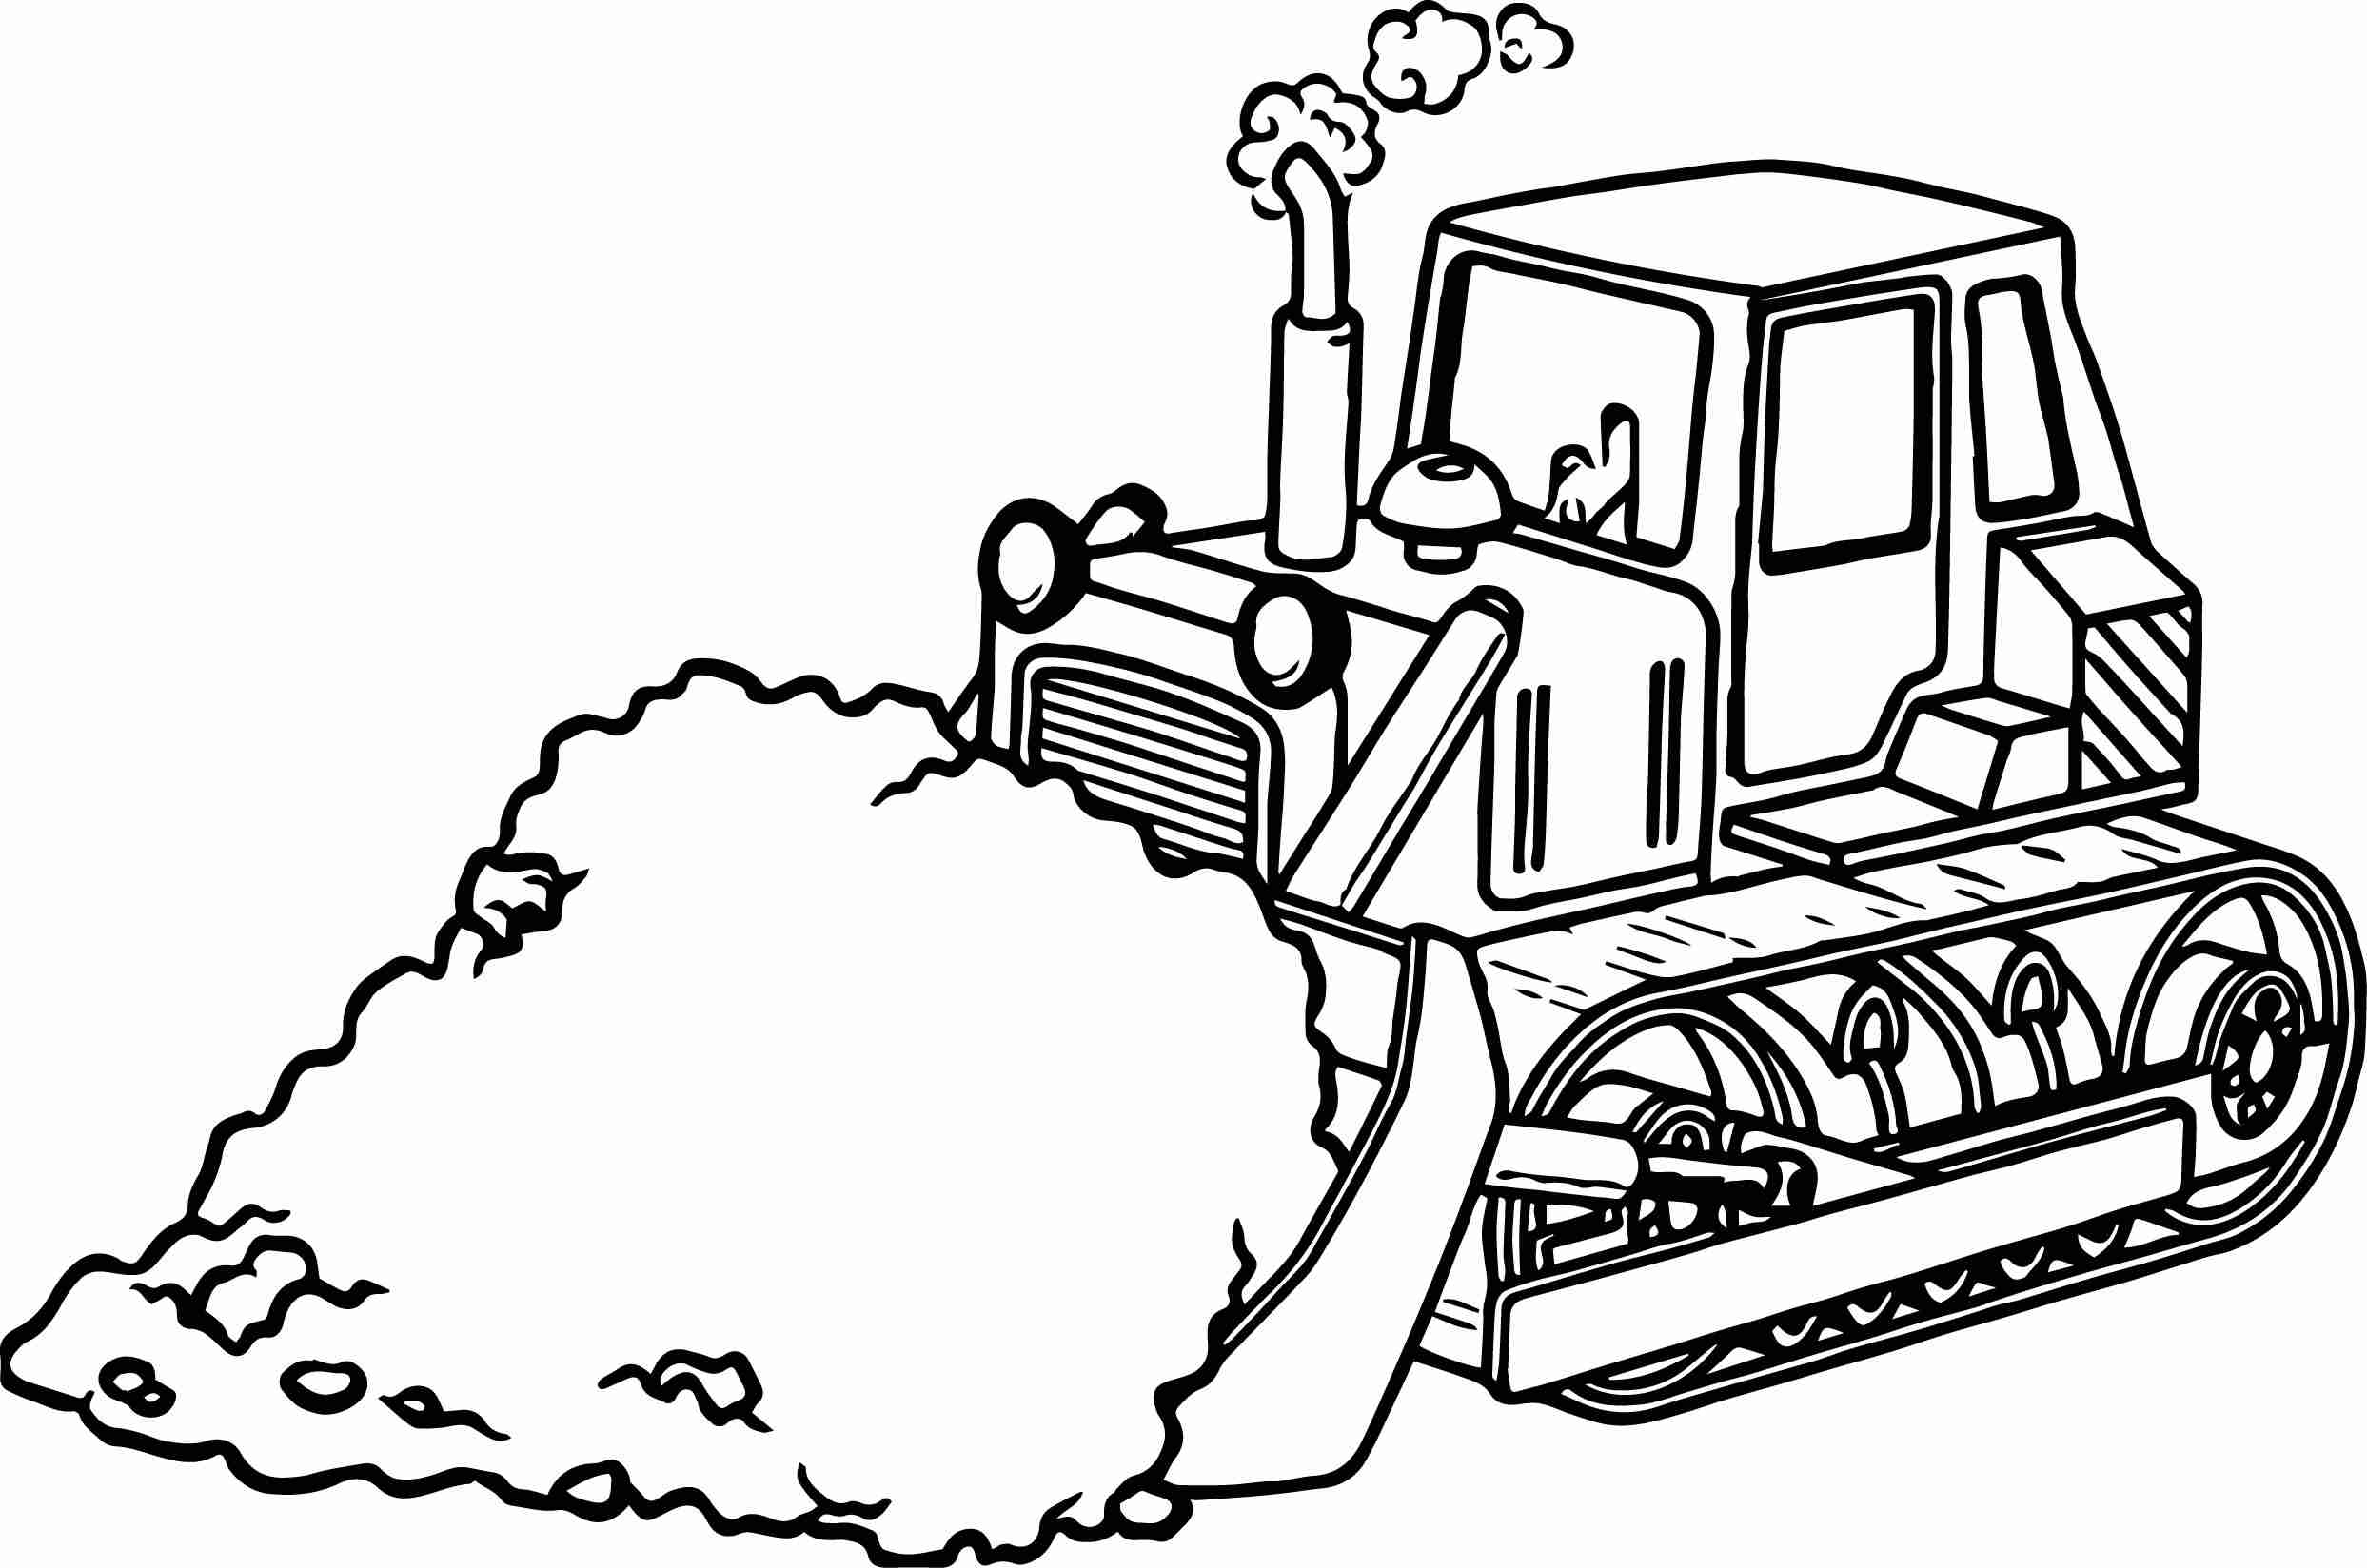 2487x1648 Heavy Construction Equipment Wheel Loader Coloring Page Letmecolor